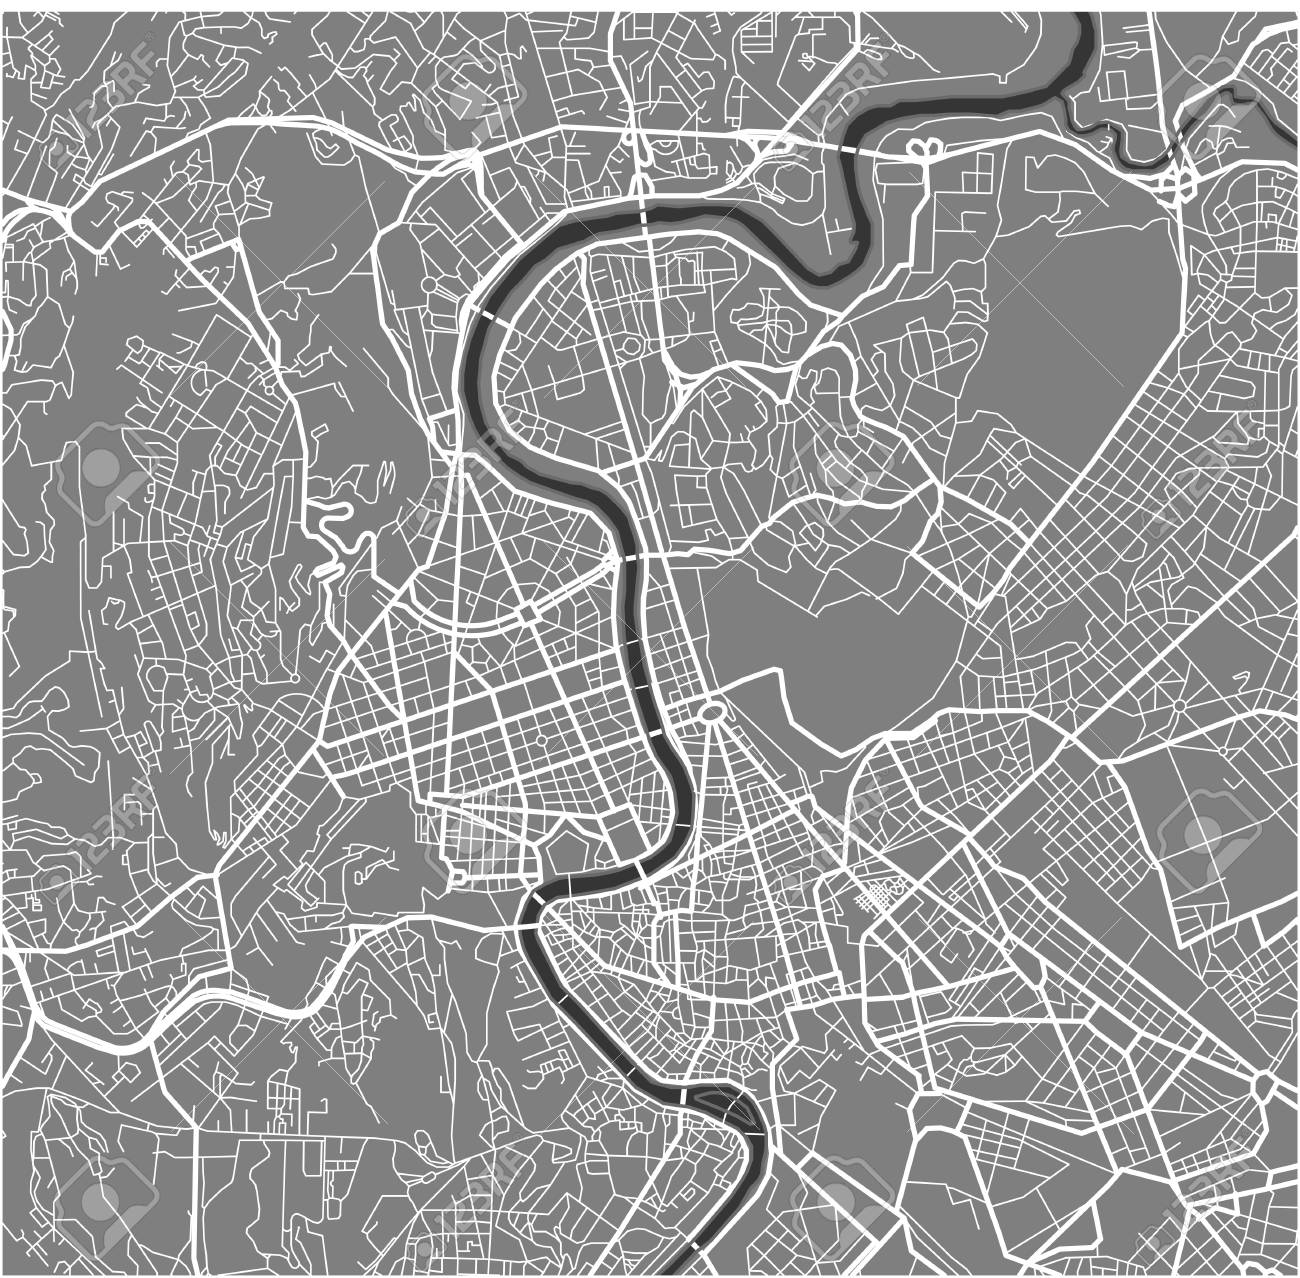 Vector Map Of The City Of Rome, Italy Royalty Free Cliparts, Vectors ...